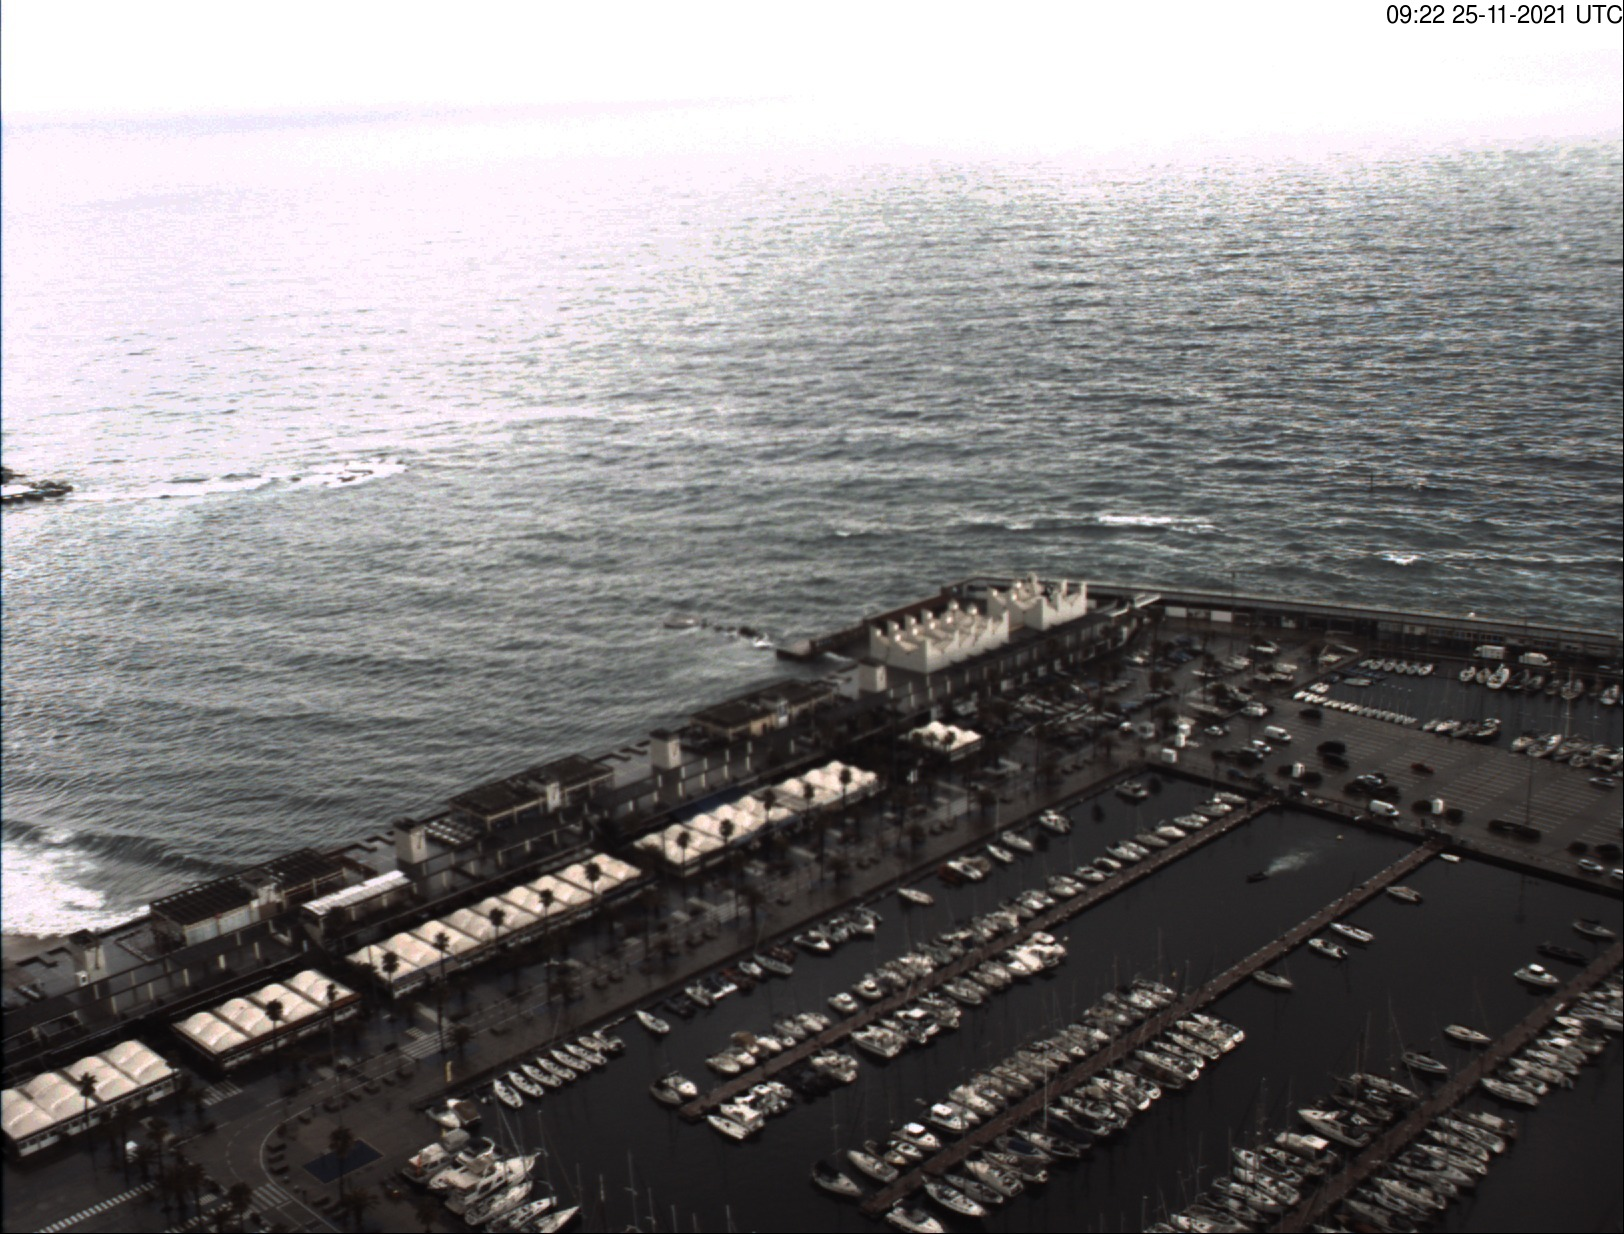 Port Olímpic – Webcam 1